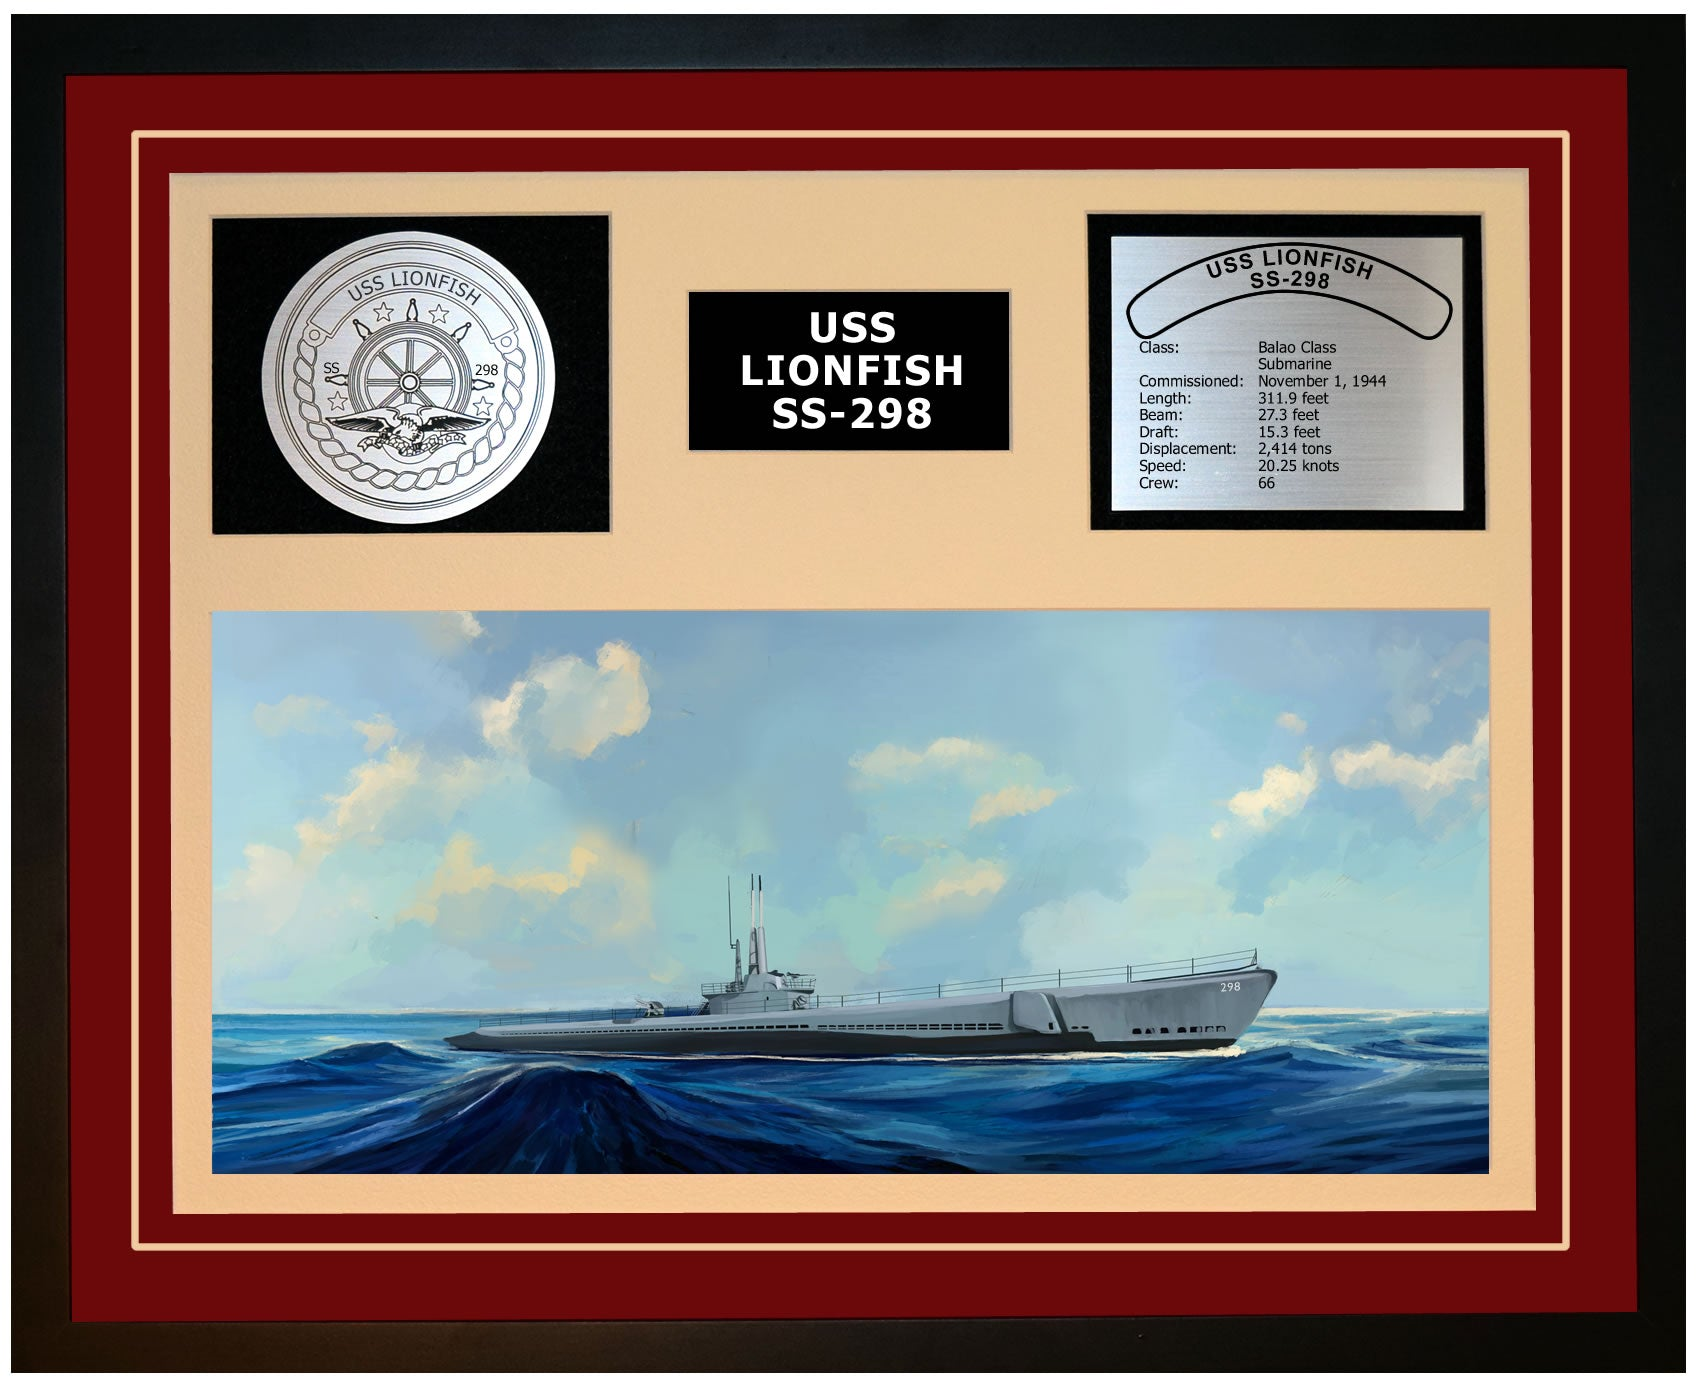 USS LIONFISH SS-298 Framed Navy Ship Display Burgundy